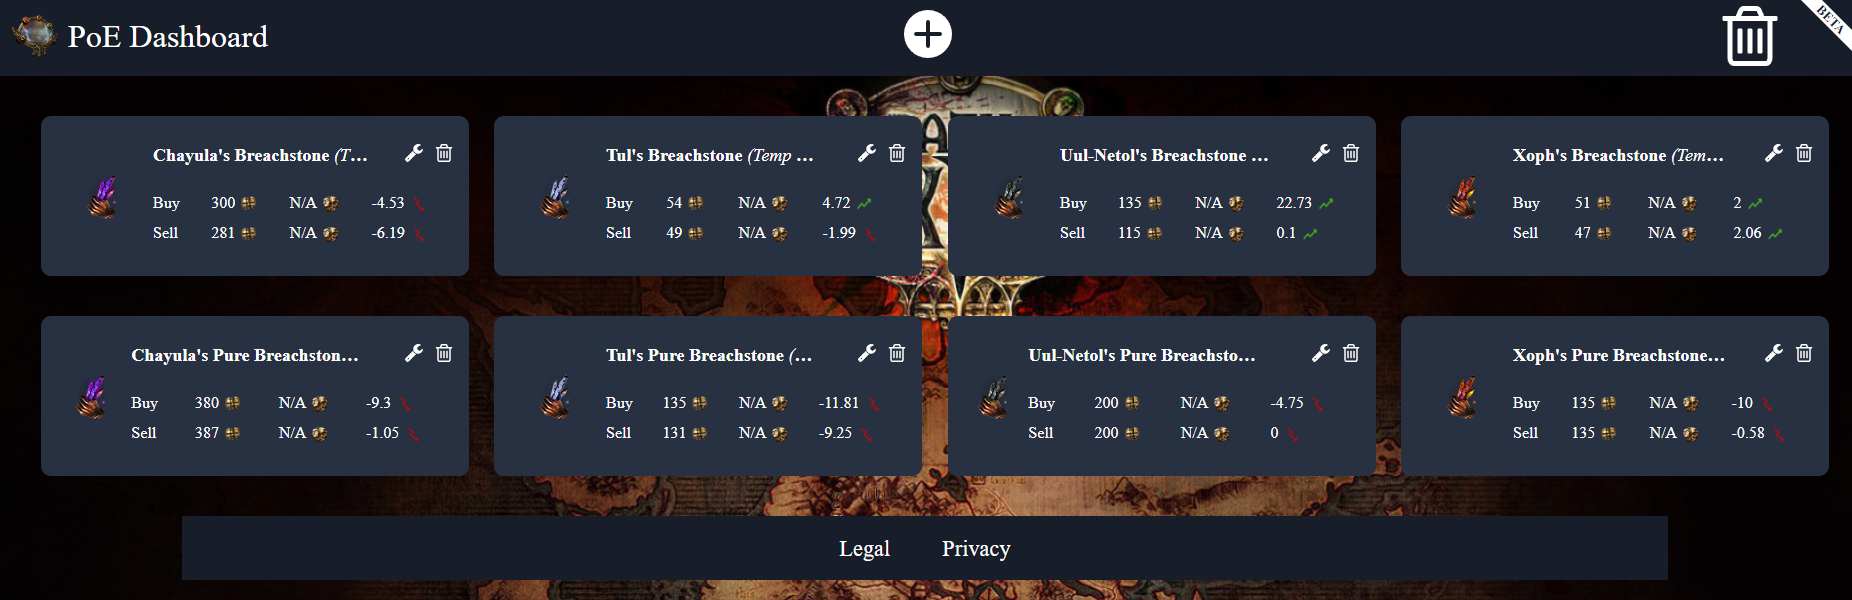 Forum - Gameplay Help and Discussion - [Tool] PoE-Dashboard